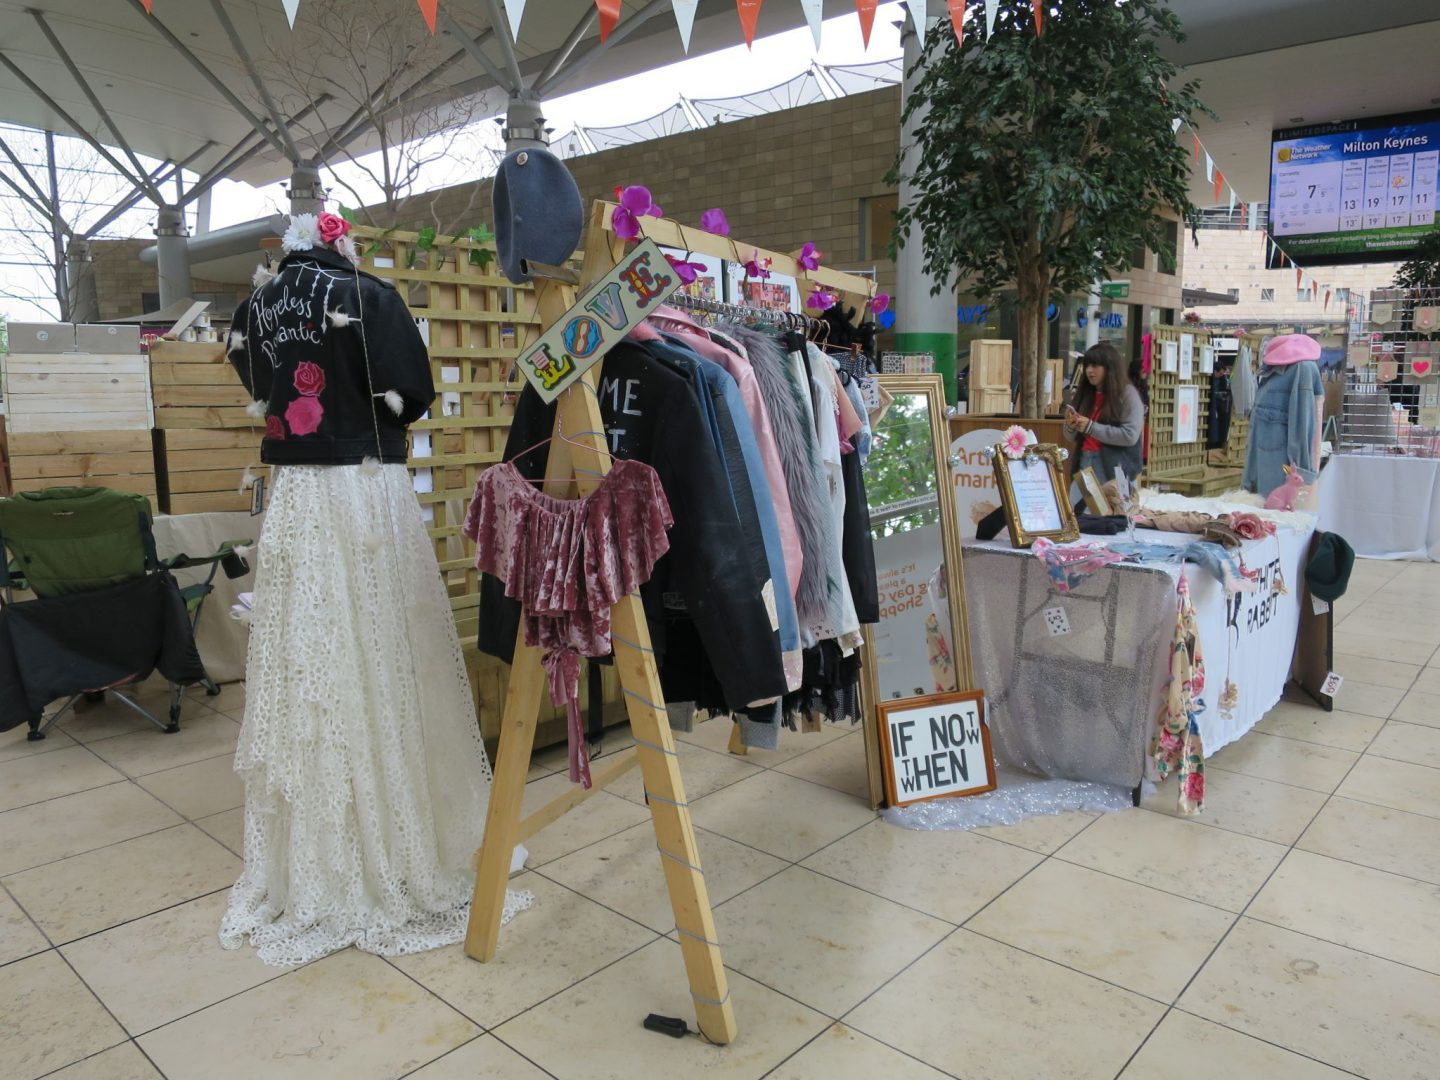 White Rabbit Fashion Artisan Market intu Milton Keynes